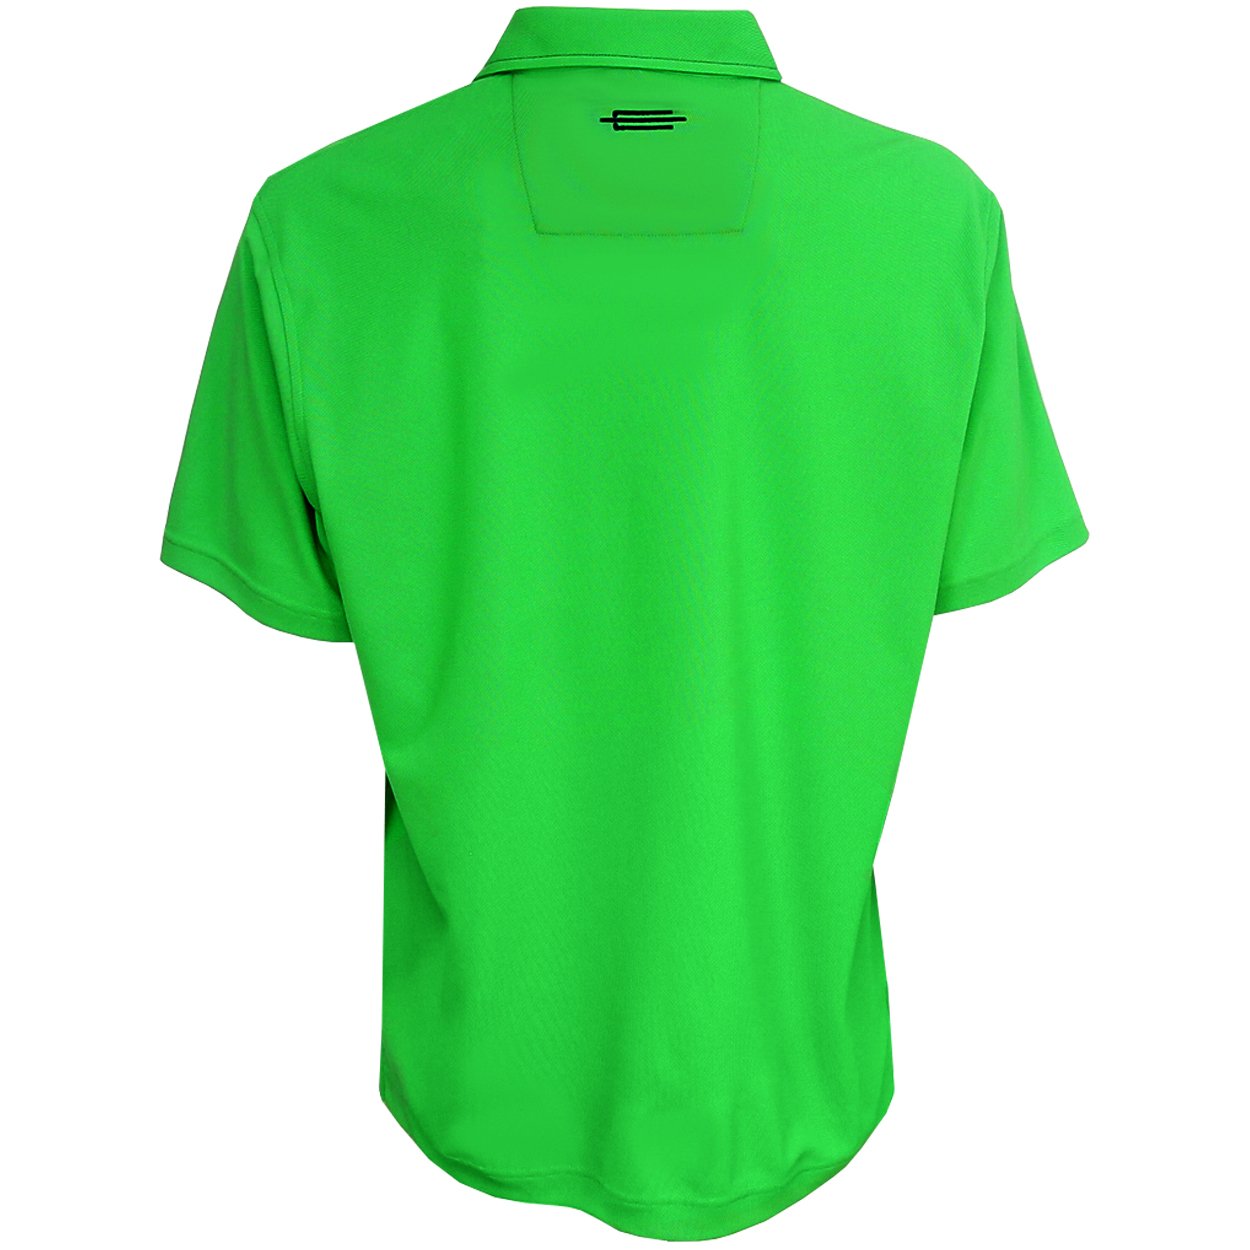 FREE SHIPPING AVAILABLE! Shop ganjamoney.tk and save on Solid Polo Shirts Shirts.